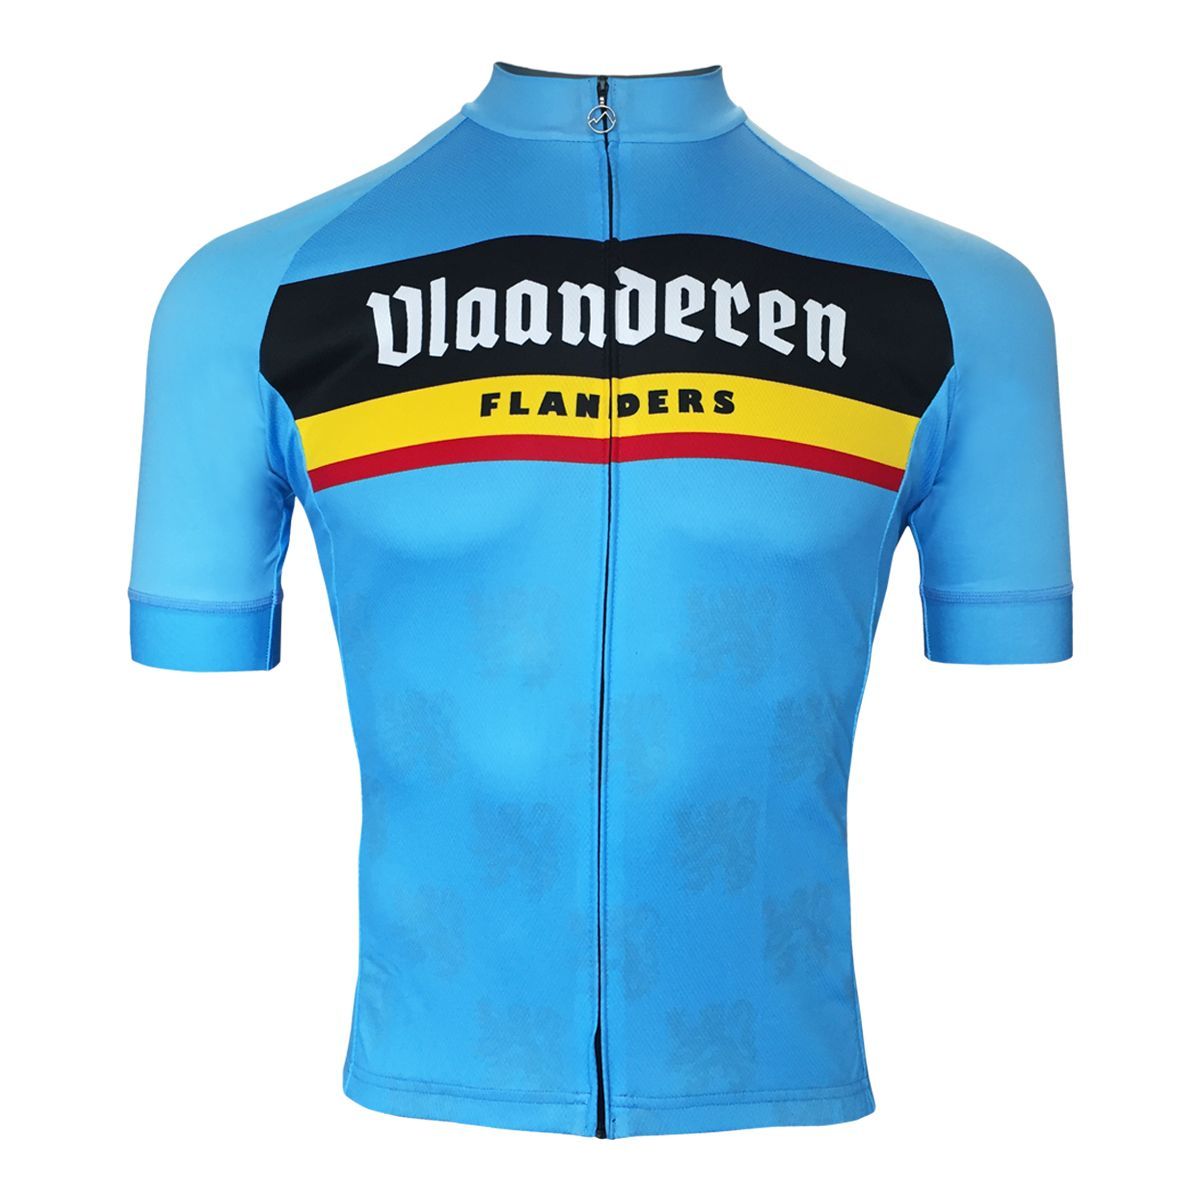 Flanders Jersey - Short Sleeve Cycling Jersey by Milltag  98b9b4a48